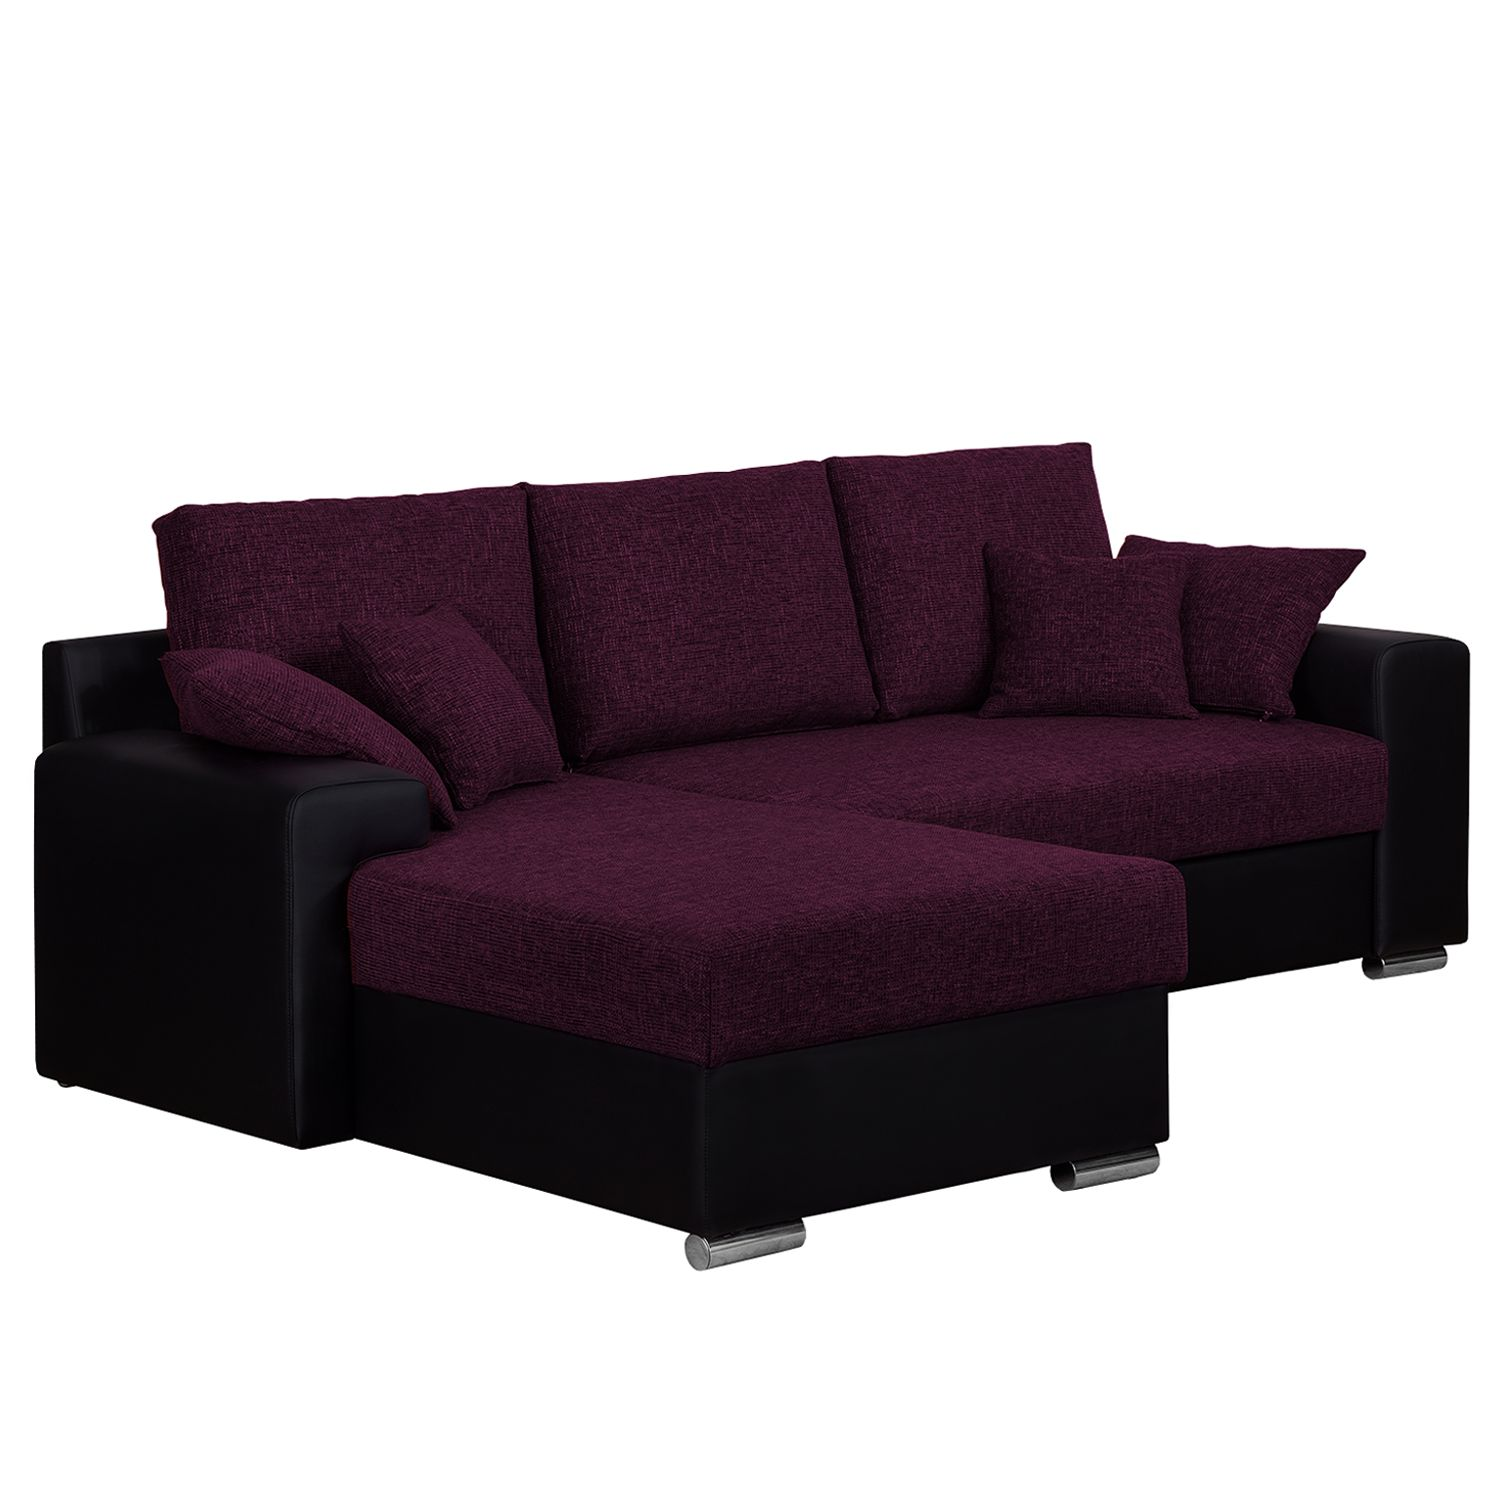 Full Size of Sofa Lila Emerald Craft Lilah Chesterfield Samt Ikea Salon Queen Sleeper Lilac Uk Raymour Living Room Cushions Corner Chair 3 Piece Suite Throws Bed Covers Sofa Sofa Lila